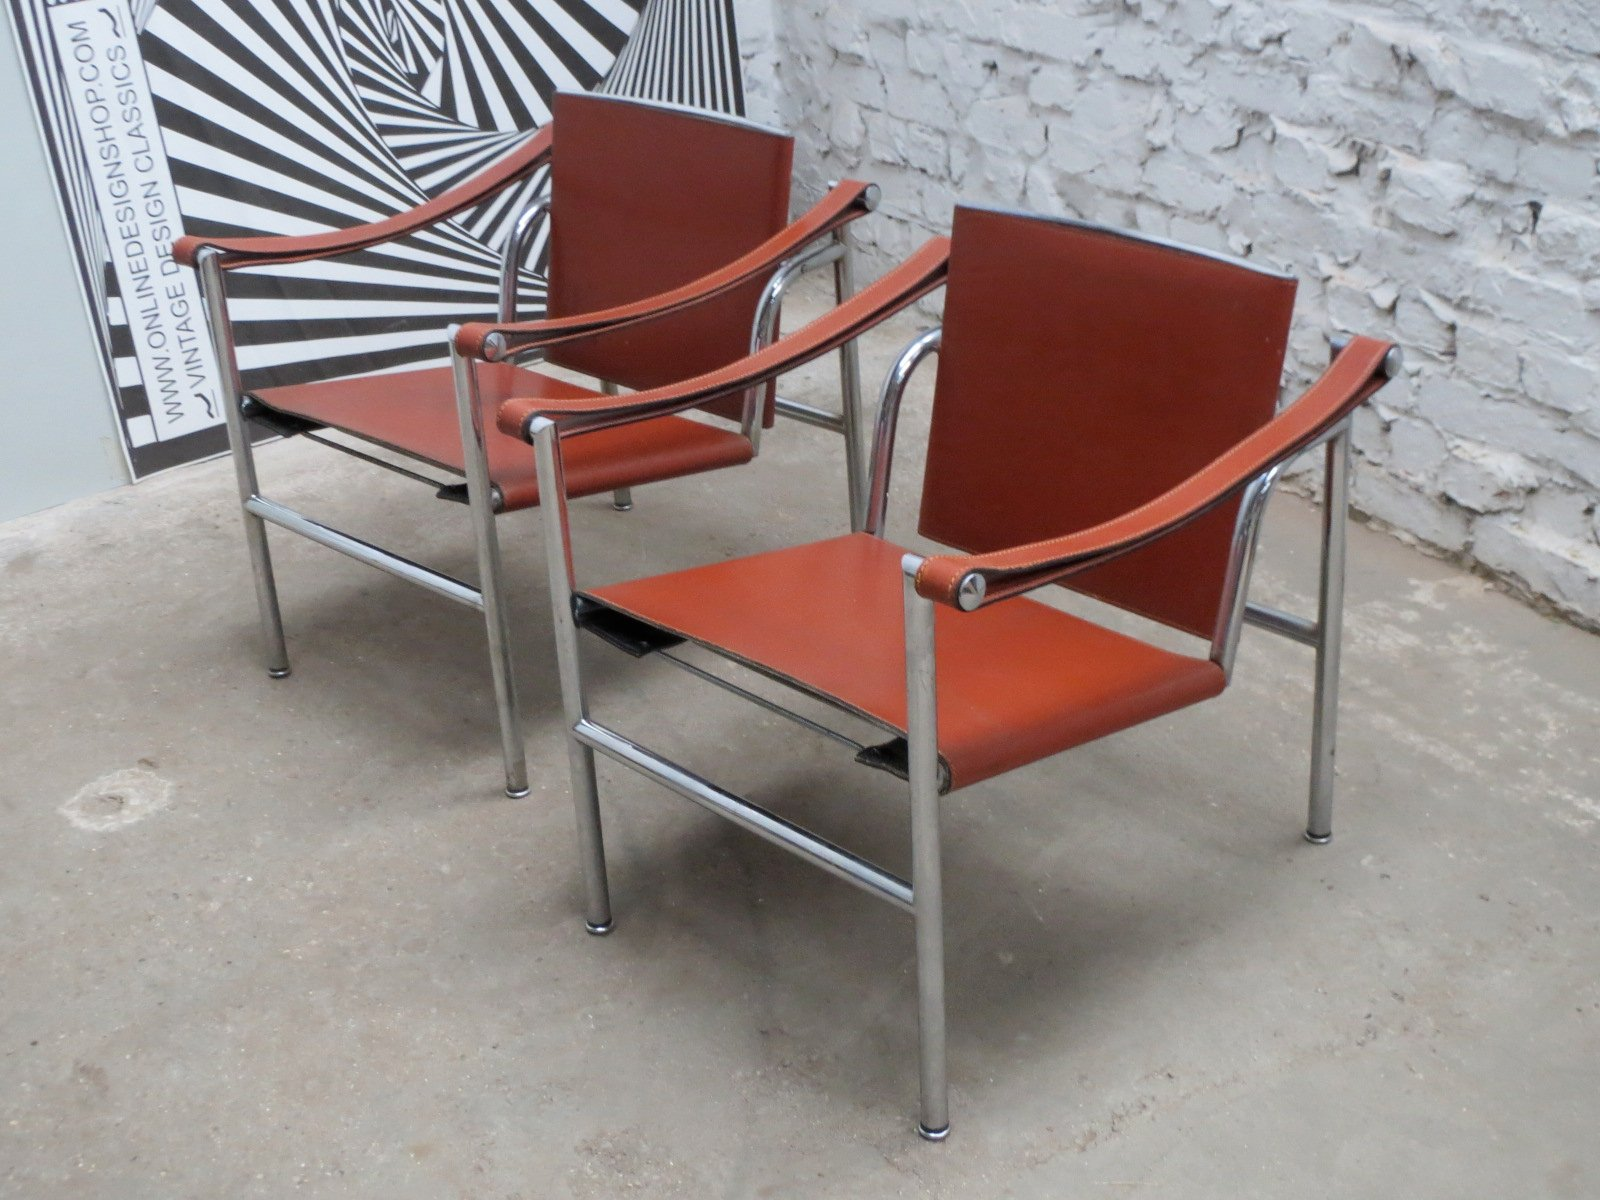 Delicieux Italian Modernist Basculant LC1 Chair By Le Corbusier, Pierre Jeanneret,  And Charlotte Perriand For Cassina, 1980s